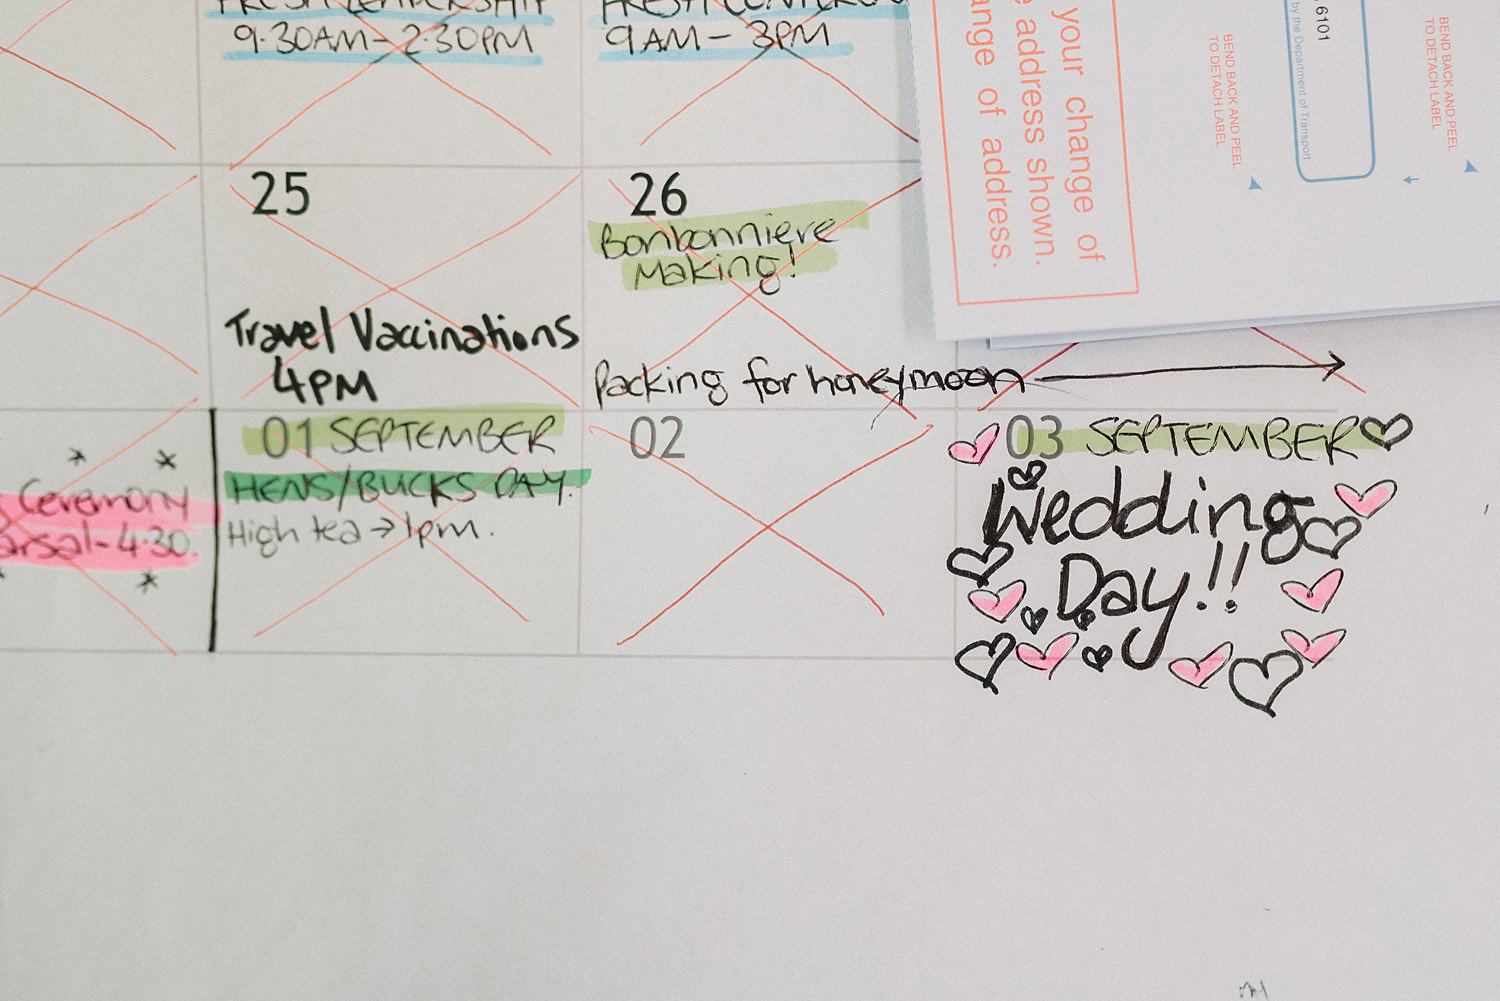 Calendar Date Of Wedding